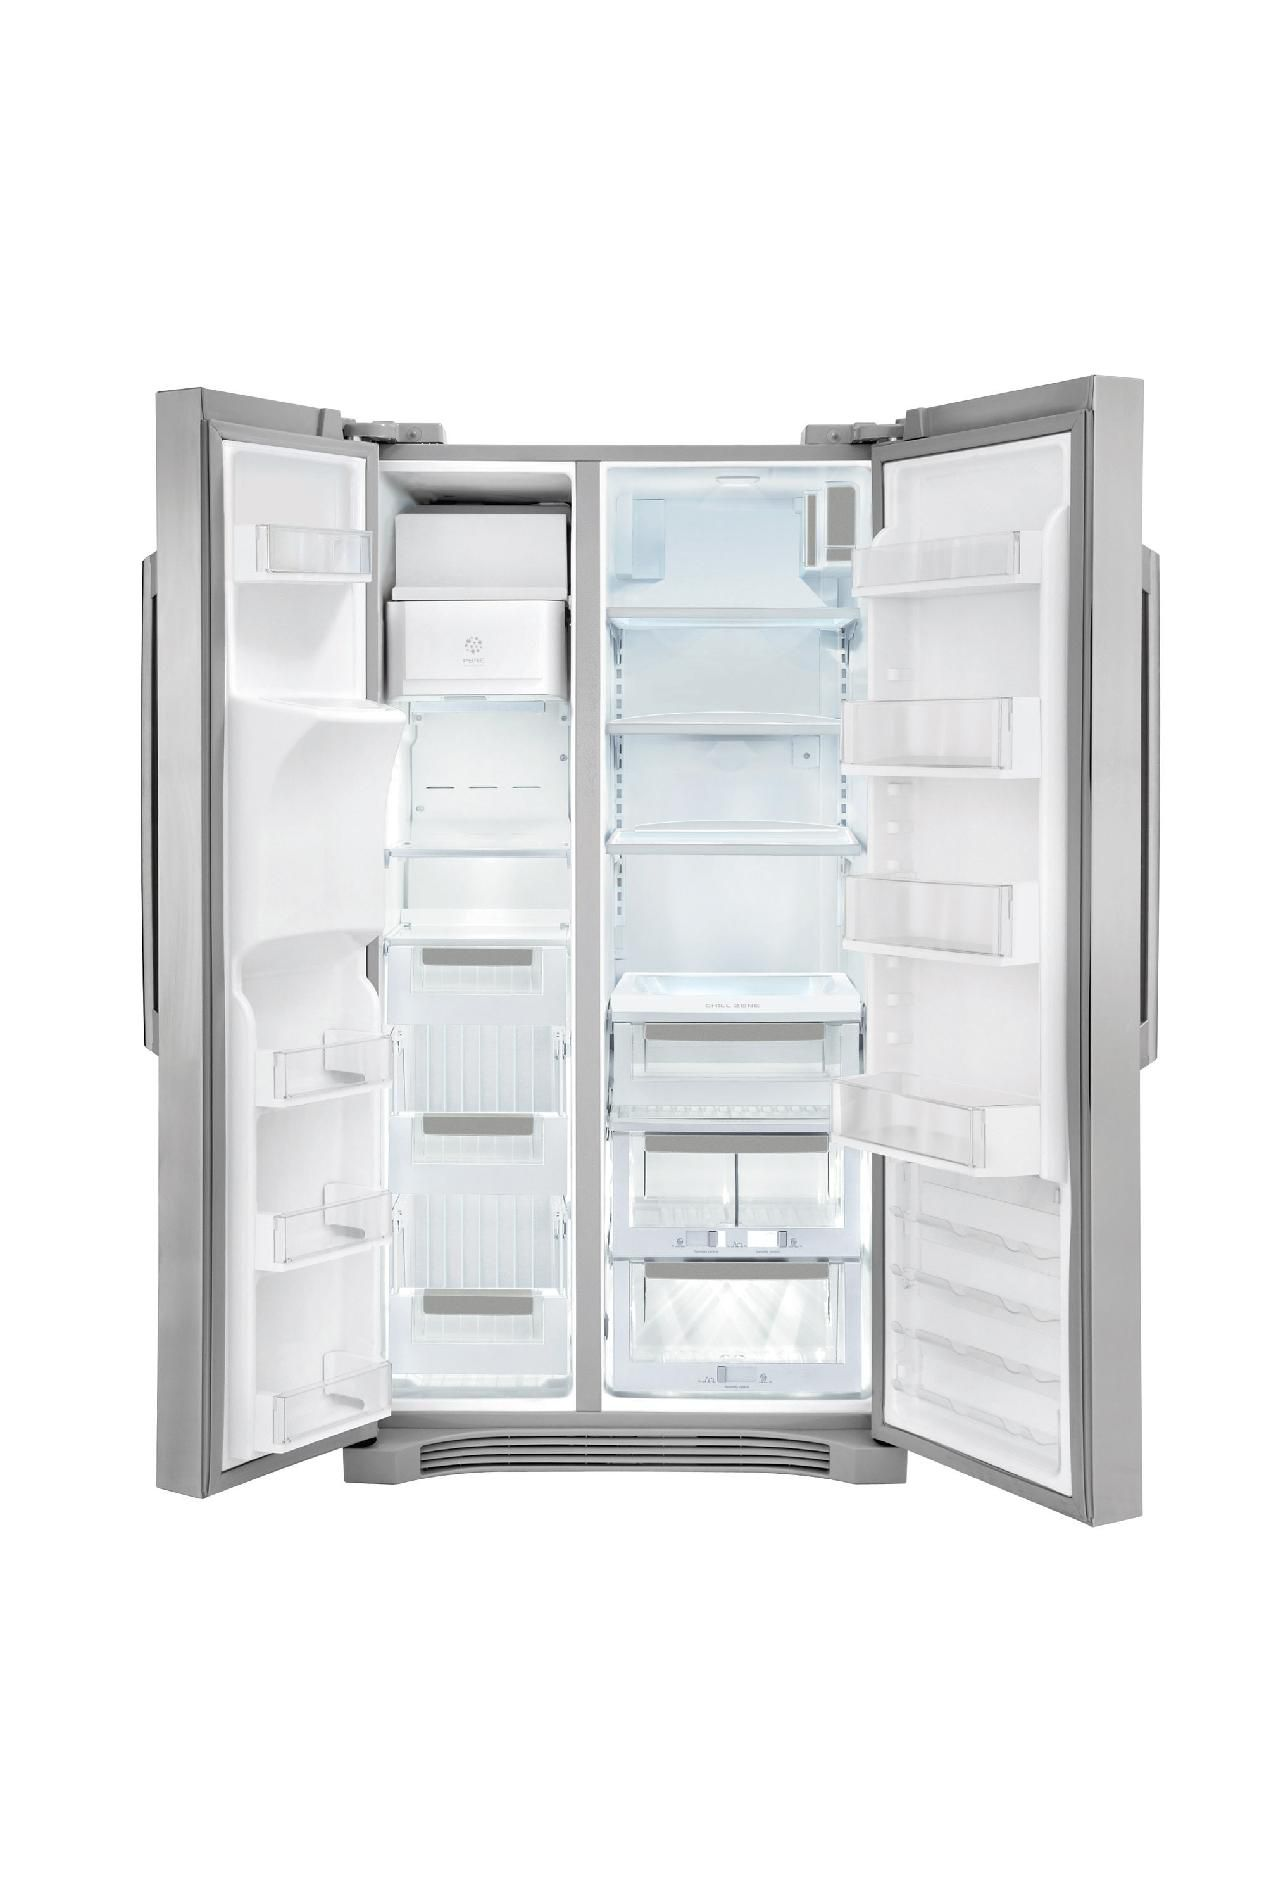 Electrolux EI23CS35KS 22.6 cu. ft. Counter-Depth Side-By-Side Refrigerator - Stainless Steel